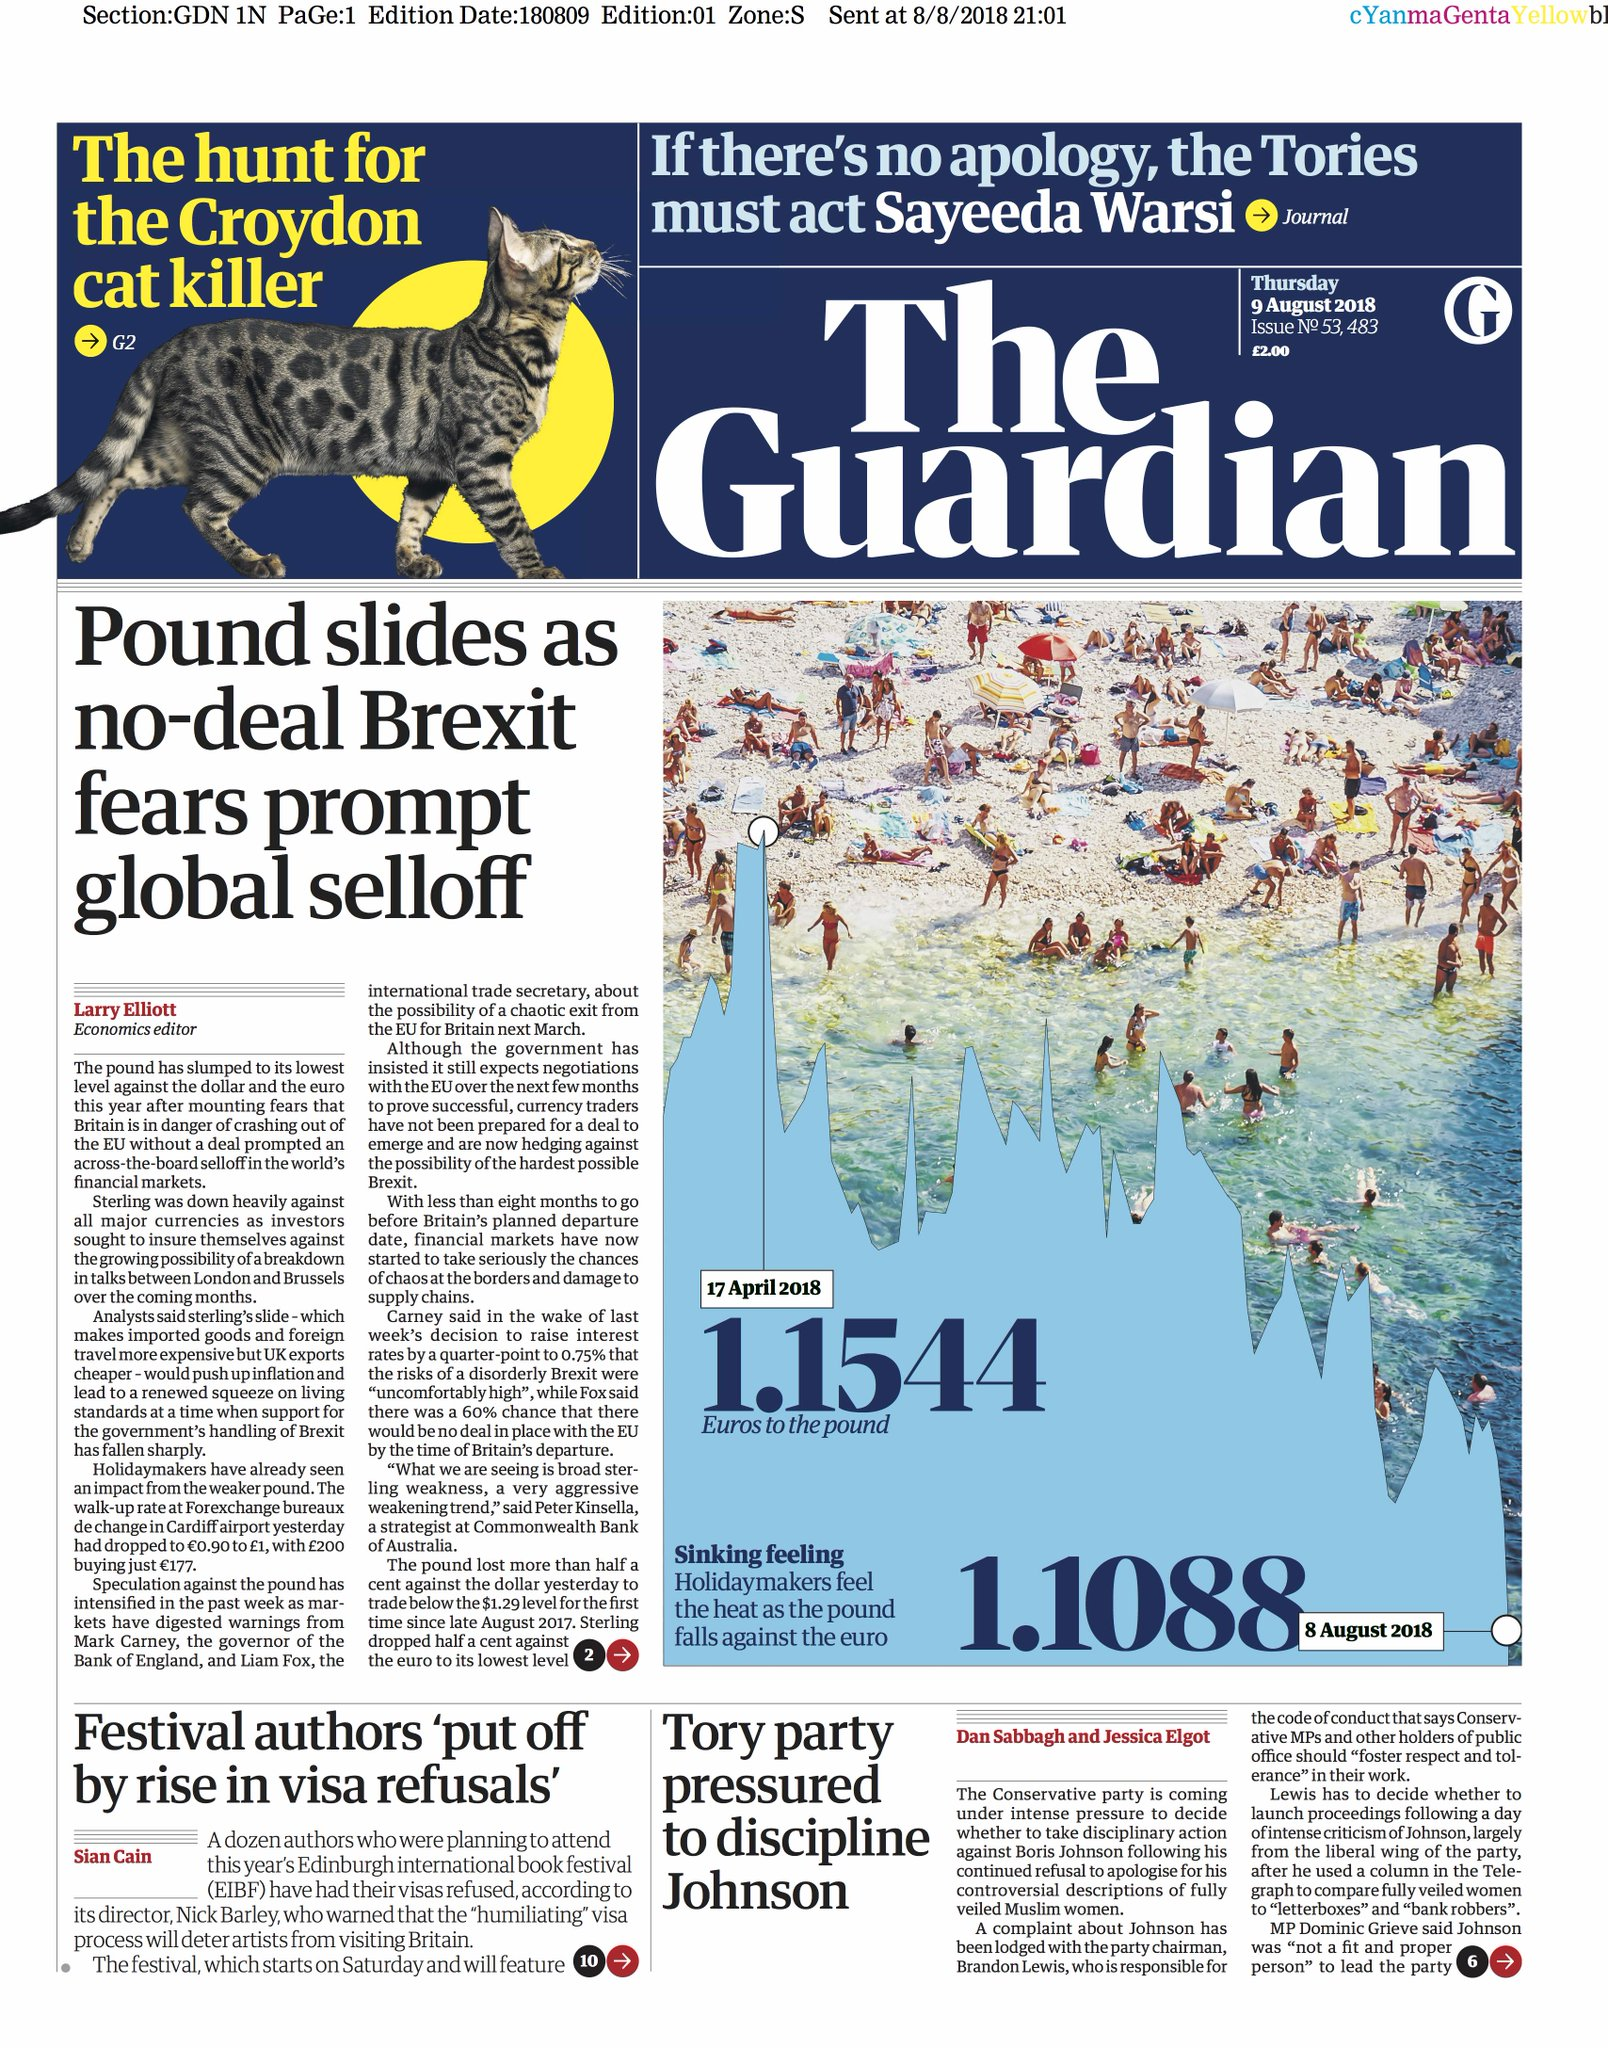 Guardian front page, Thursday 9 August 2018: Pound slides as no-deal Brexit fears prompt global selloff https://t.co/YX9K1oSGZK